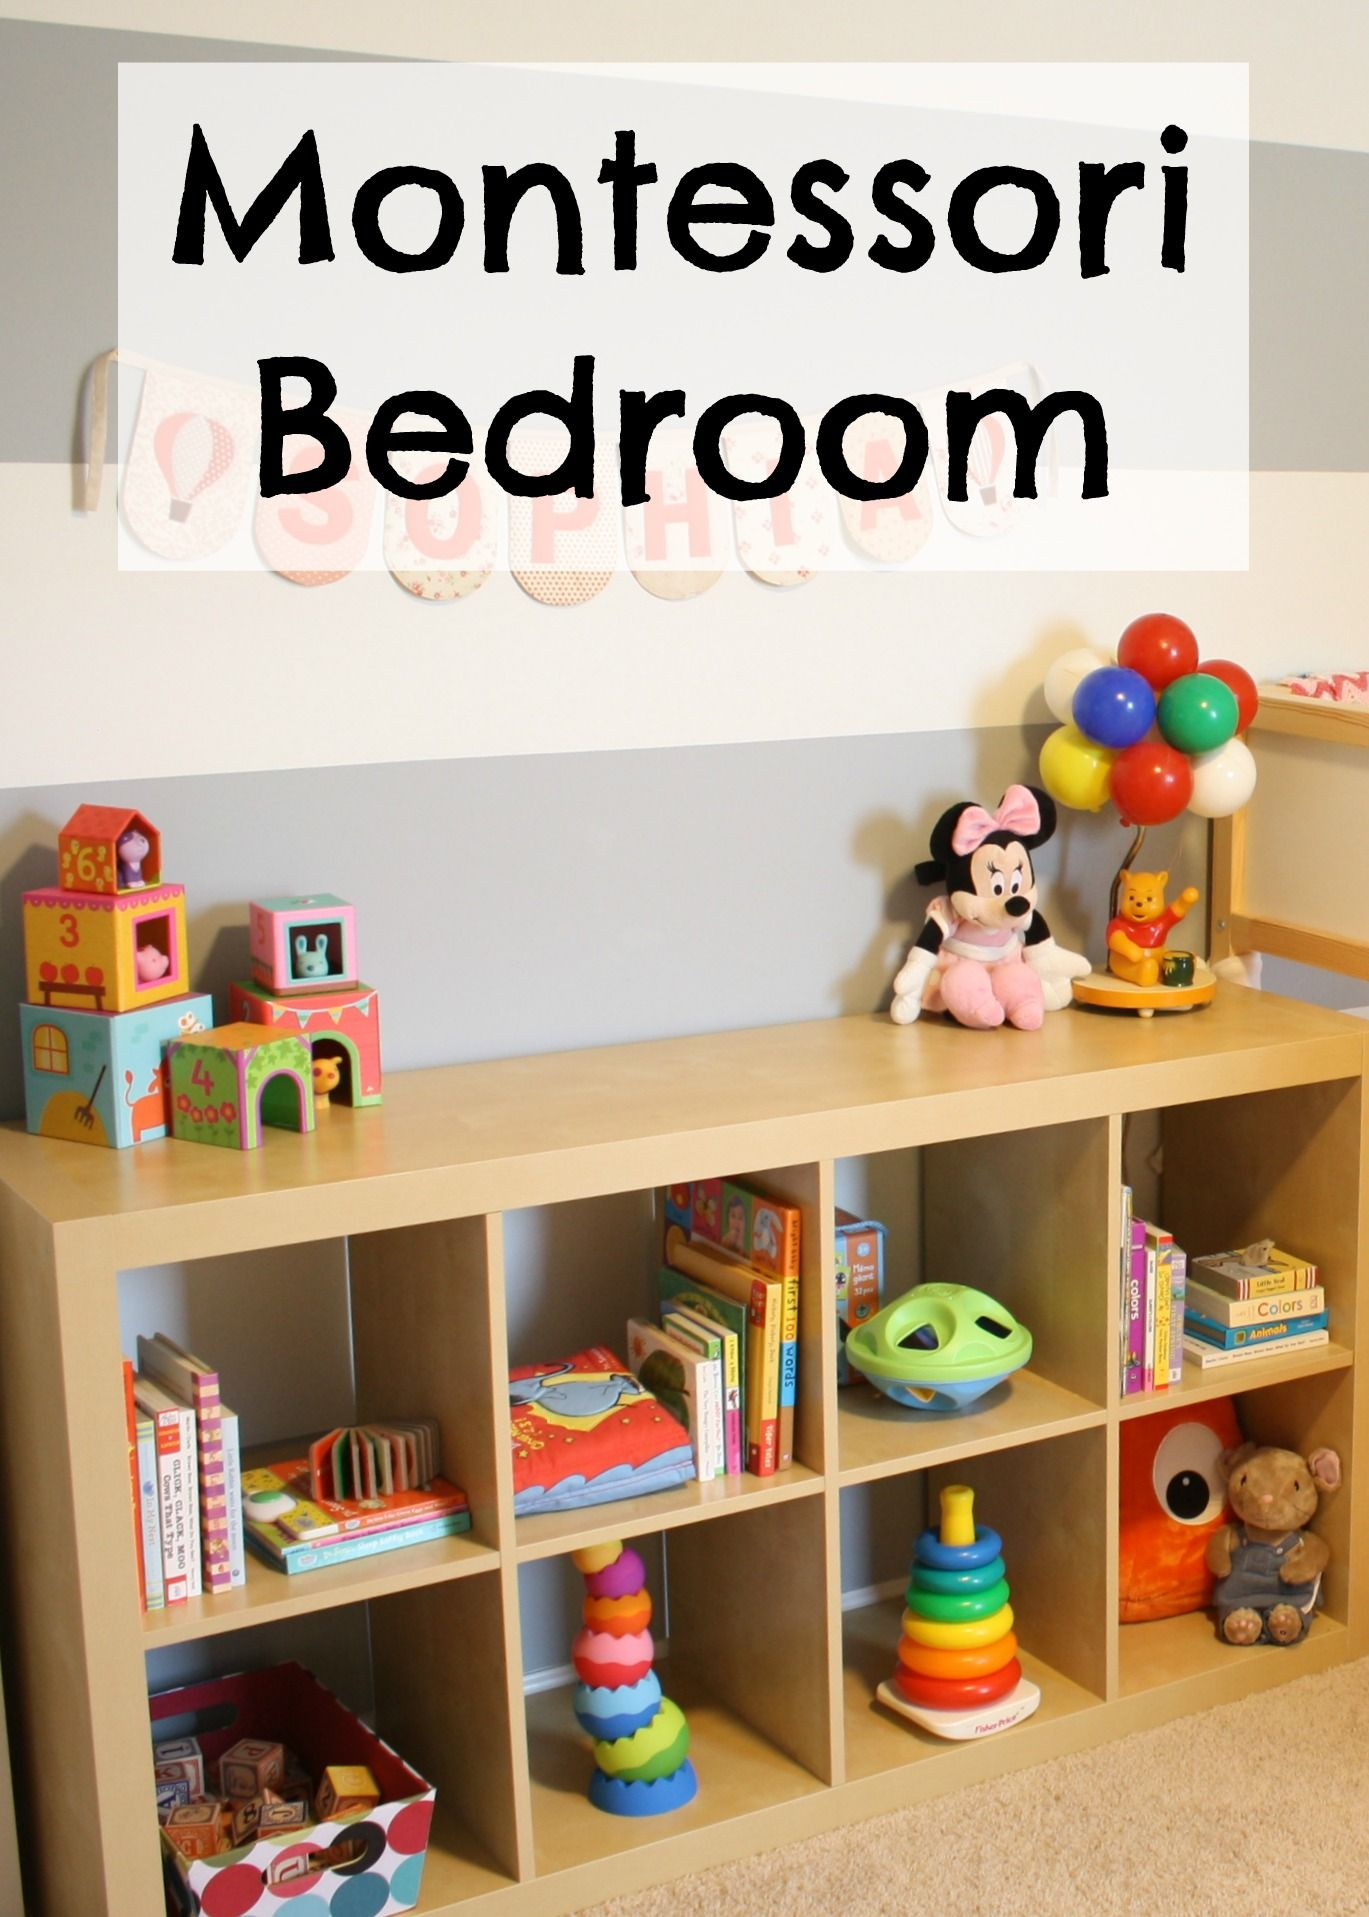 montessori bedroom montessori chambres et chambre enfant. Black Bedroom Furniture Sets. Home Design Ideas